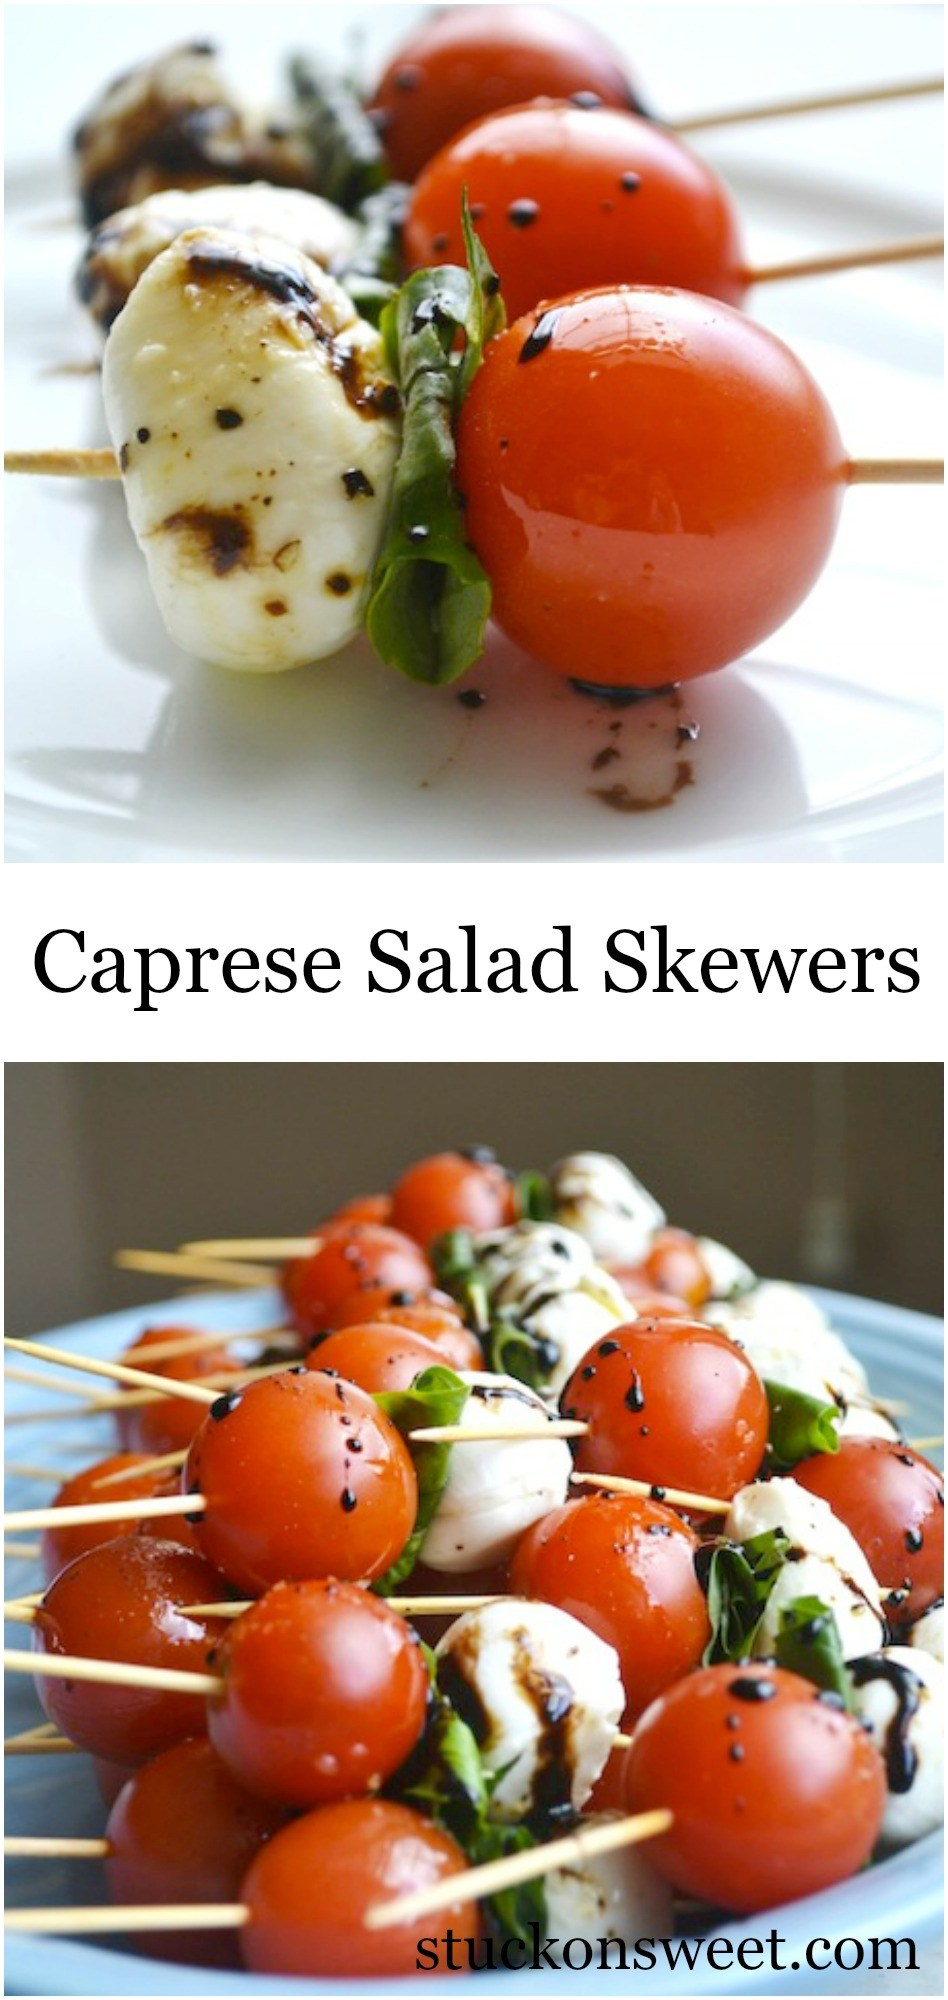 Caprese Salad Skewers - IngredientsCherry tomatoesMozzarella ballsFresh BasilOlive Oil1 cup balsamic vinegarsalt and peppertoothpicksInstructionsAssemble, tomatoes, basil (roll from one end to the other), and mozzarella balls on medium-sized toothpicks. Drizzle with olive oil and sprinkle with salt and pepper.To make balsamic glaze, add one cup of balsamic vinegar to a sauce pan over medium heat. Once it comes to a boil, set on simmer for about 10-15 minutes until it reduces to a syrup consistency. You can check by dipping a spoon in the balsamic and if it covers the back of it, it's done. As it cools, it will thicken a bit more then drizzle on top of caprese salad skewers.